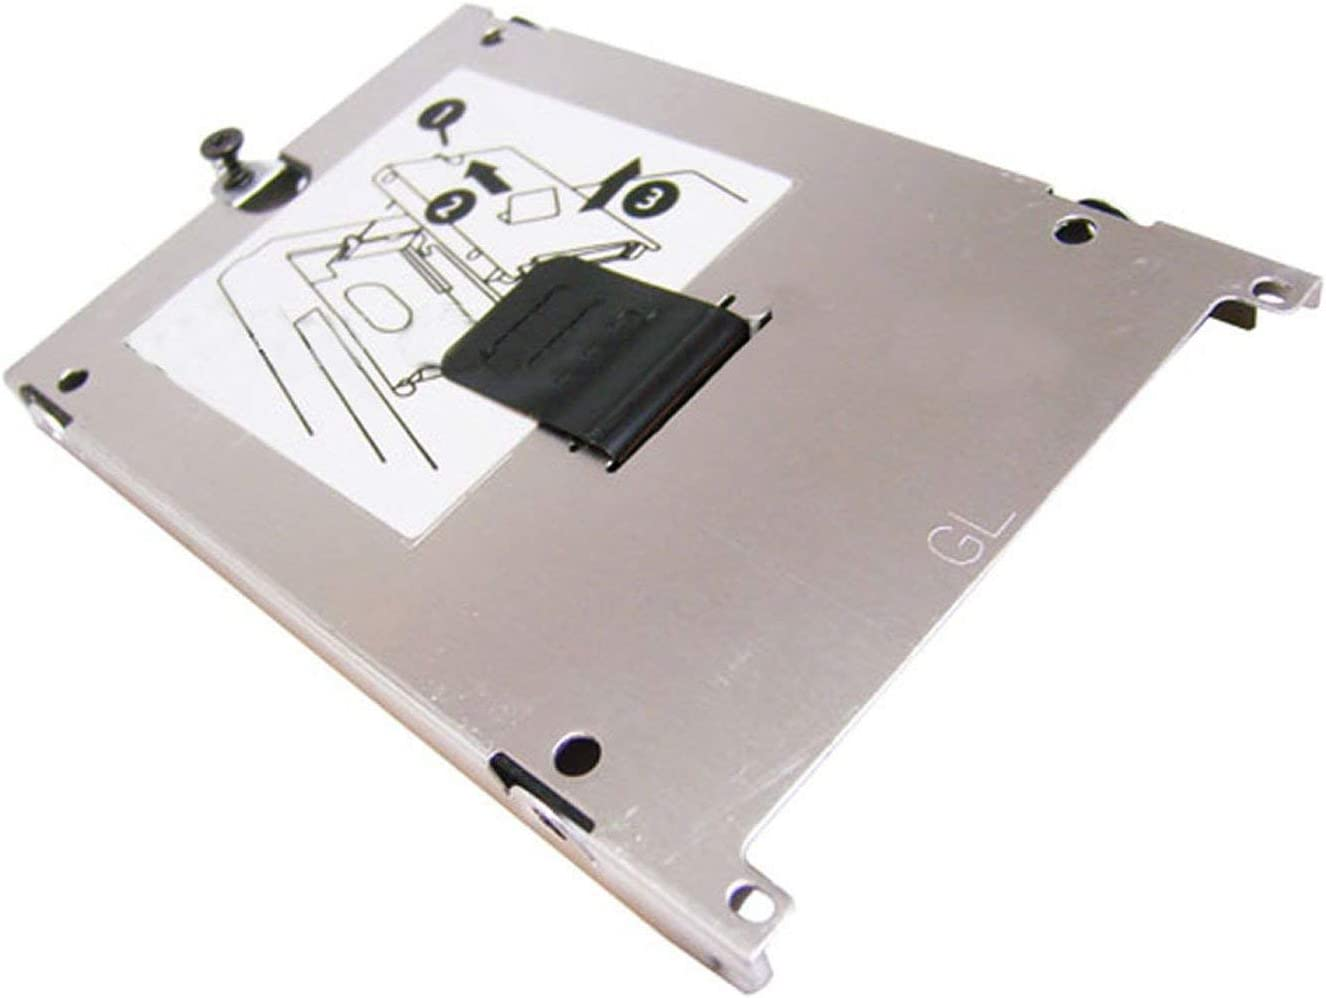 HP 8440w Carrier Inventec GL HDD Cover Bracket Assembly 1750B0035001 (Renewed)